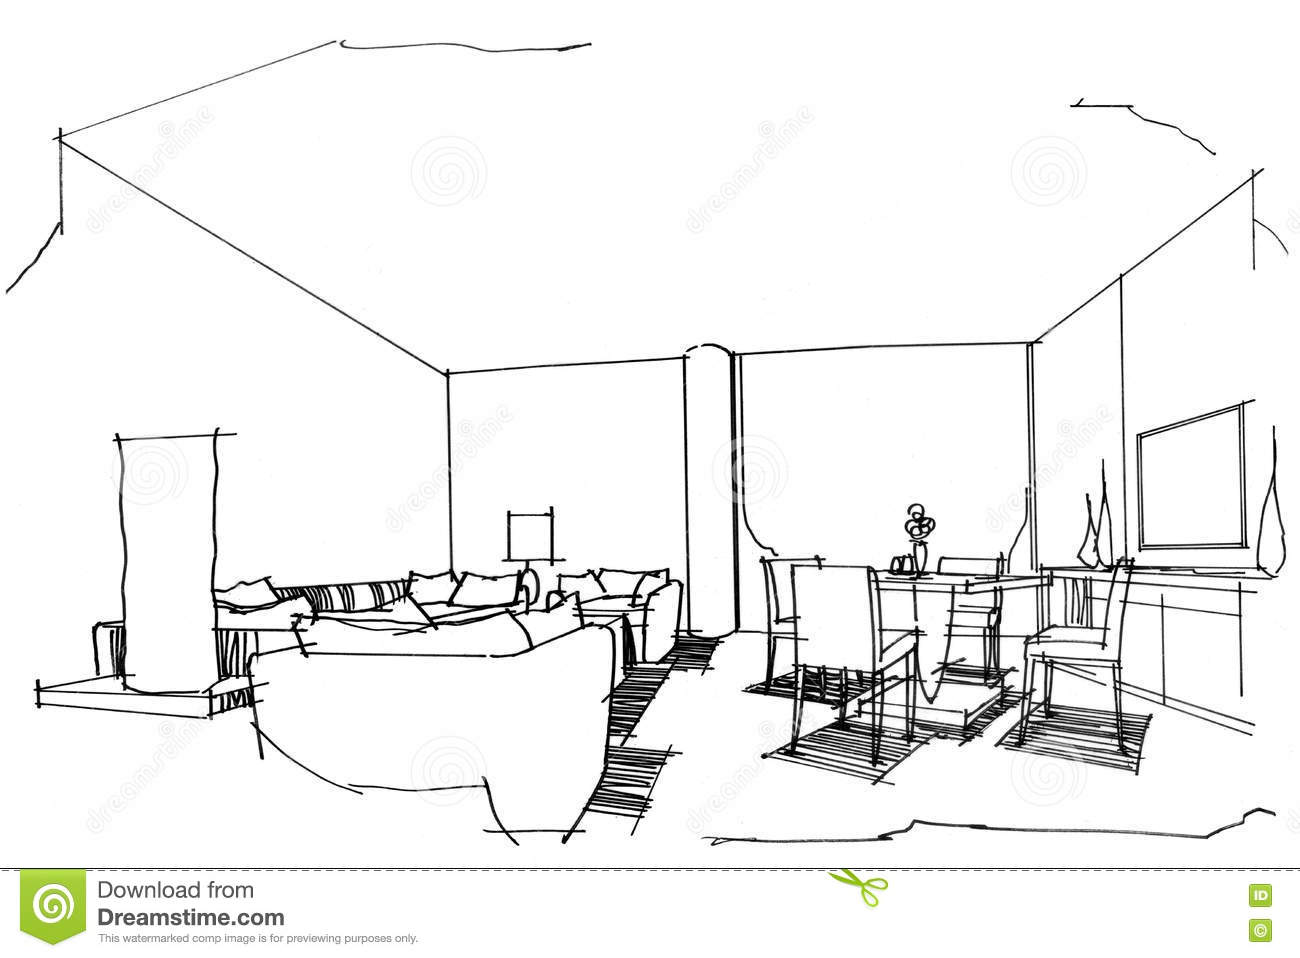 Sketch perspective interior vip room black and white for Vip room interior design